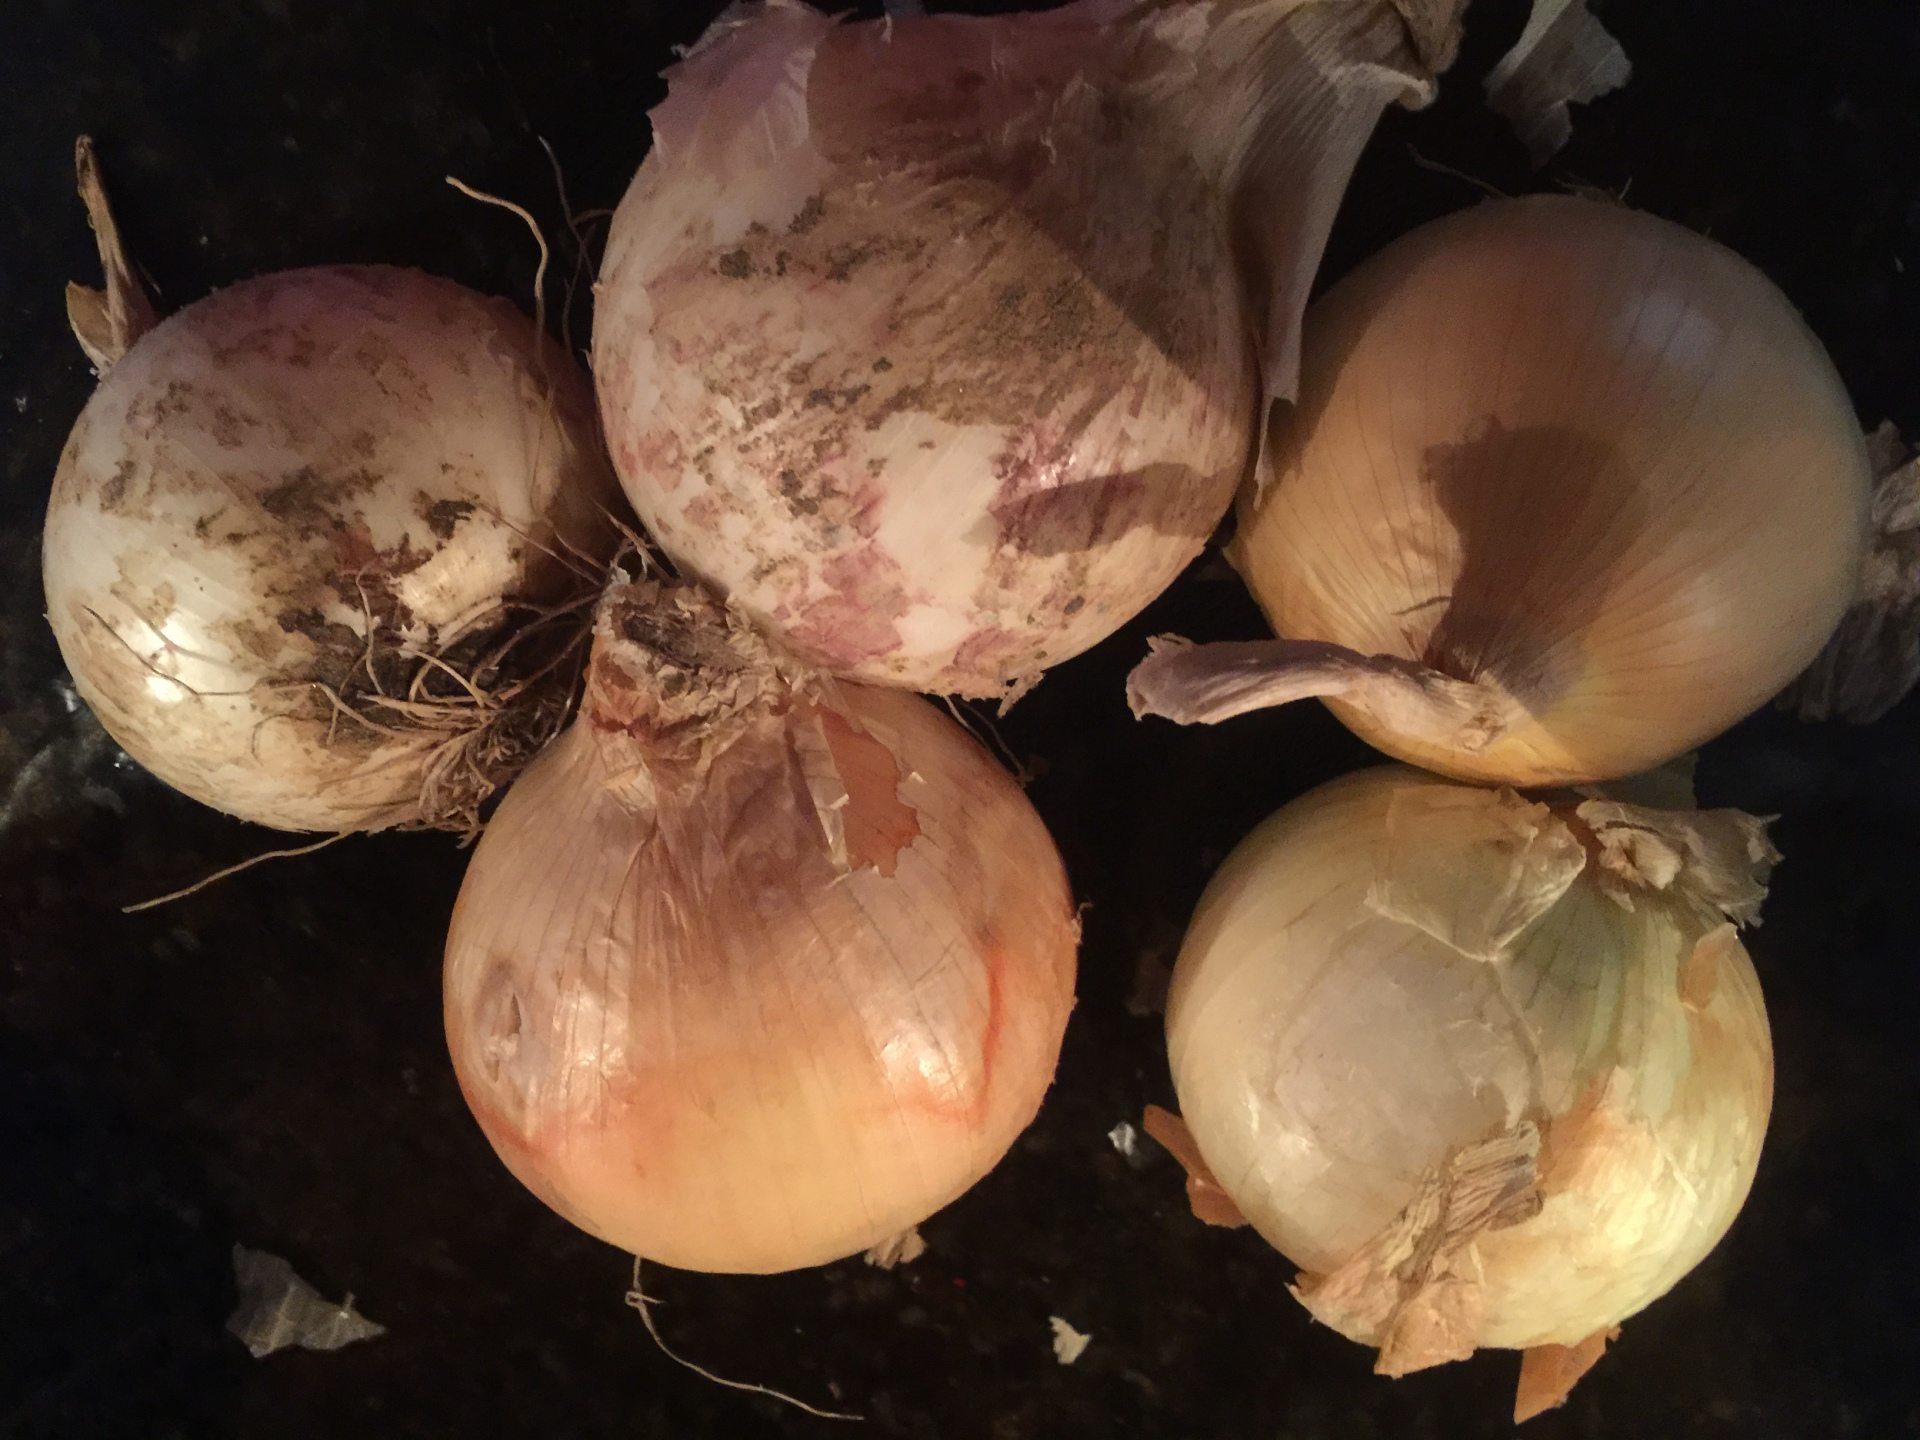 WHAT'S REALLY IN AN ONION? Find out how healthy onions really are